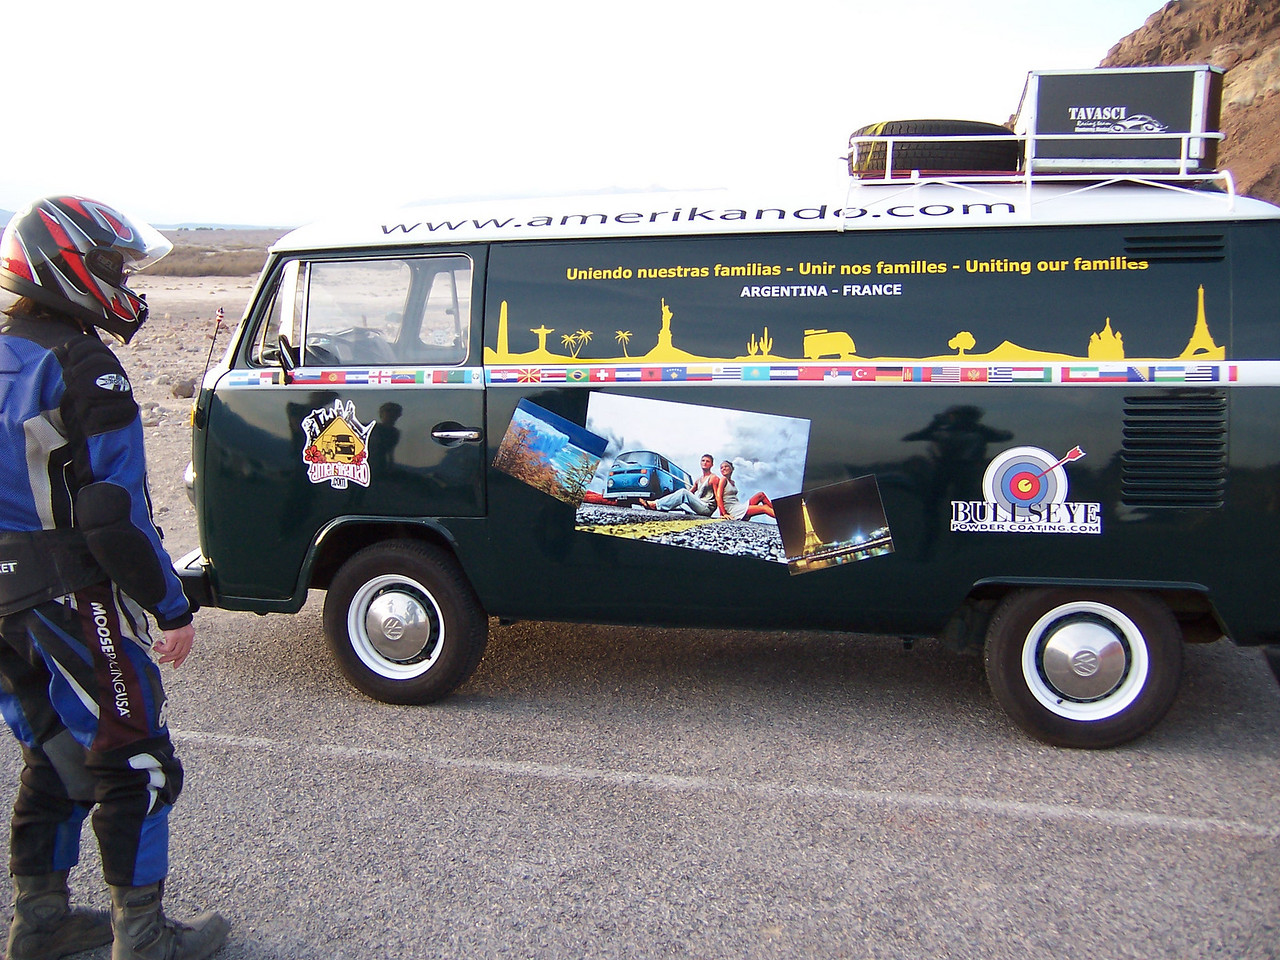 Amazing VW bus in the parking lot.